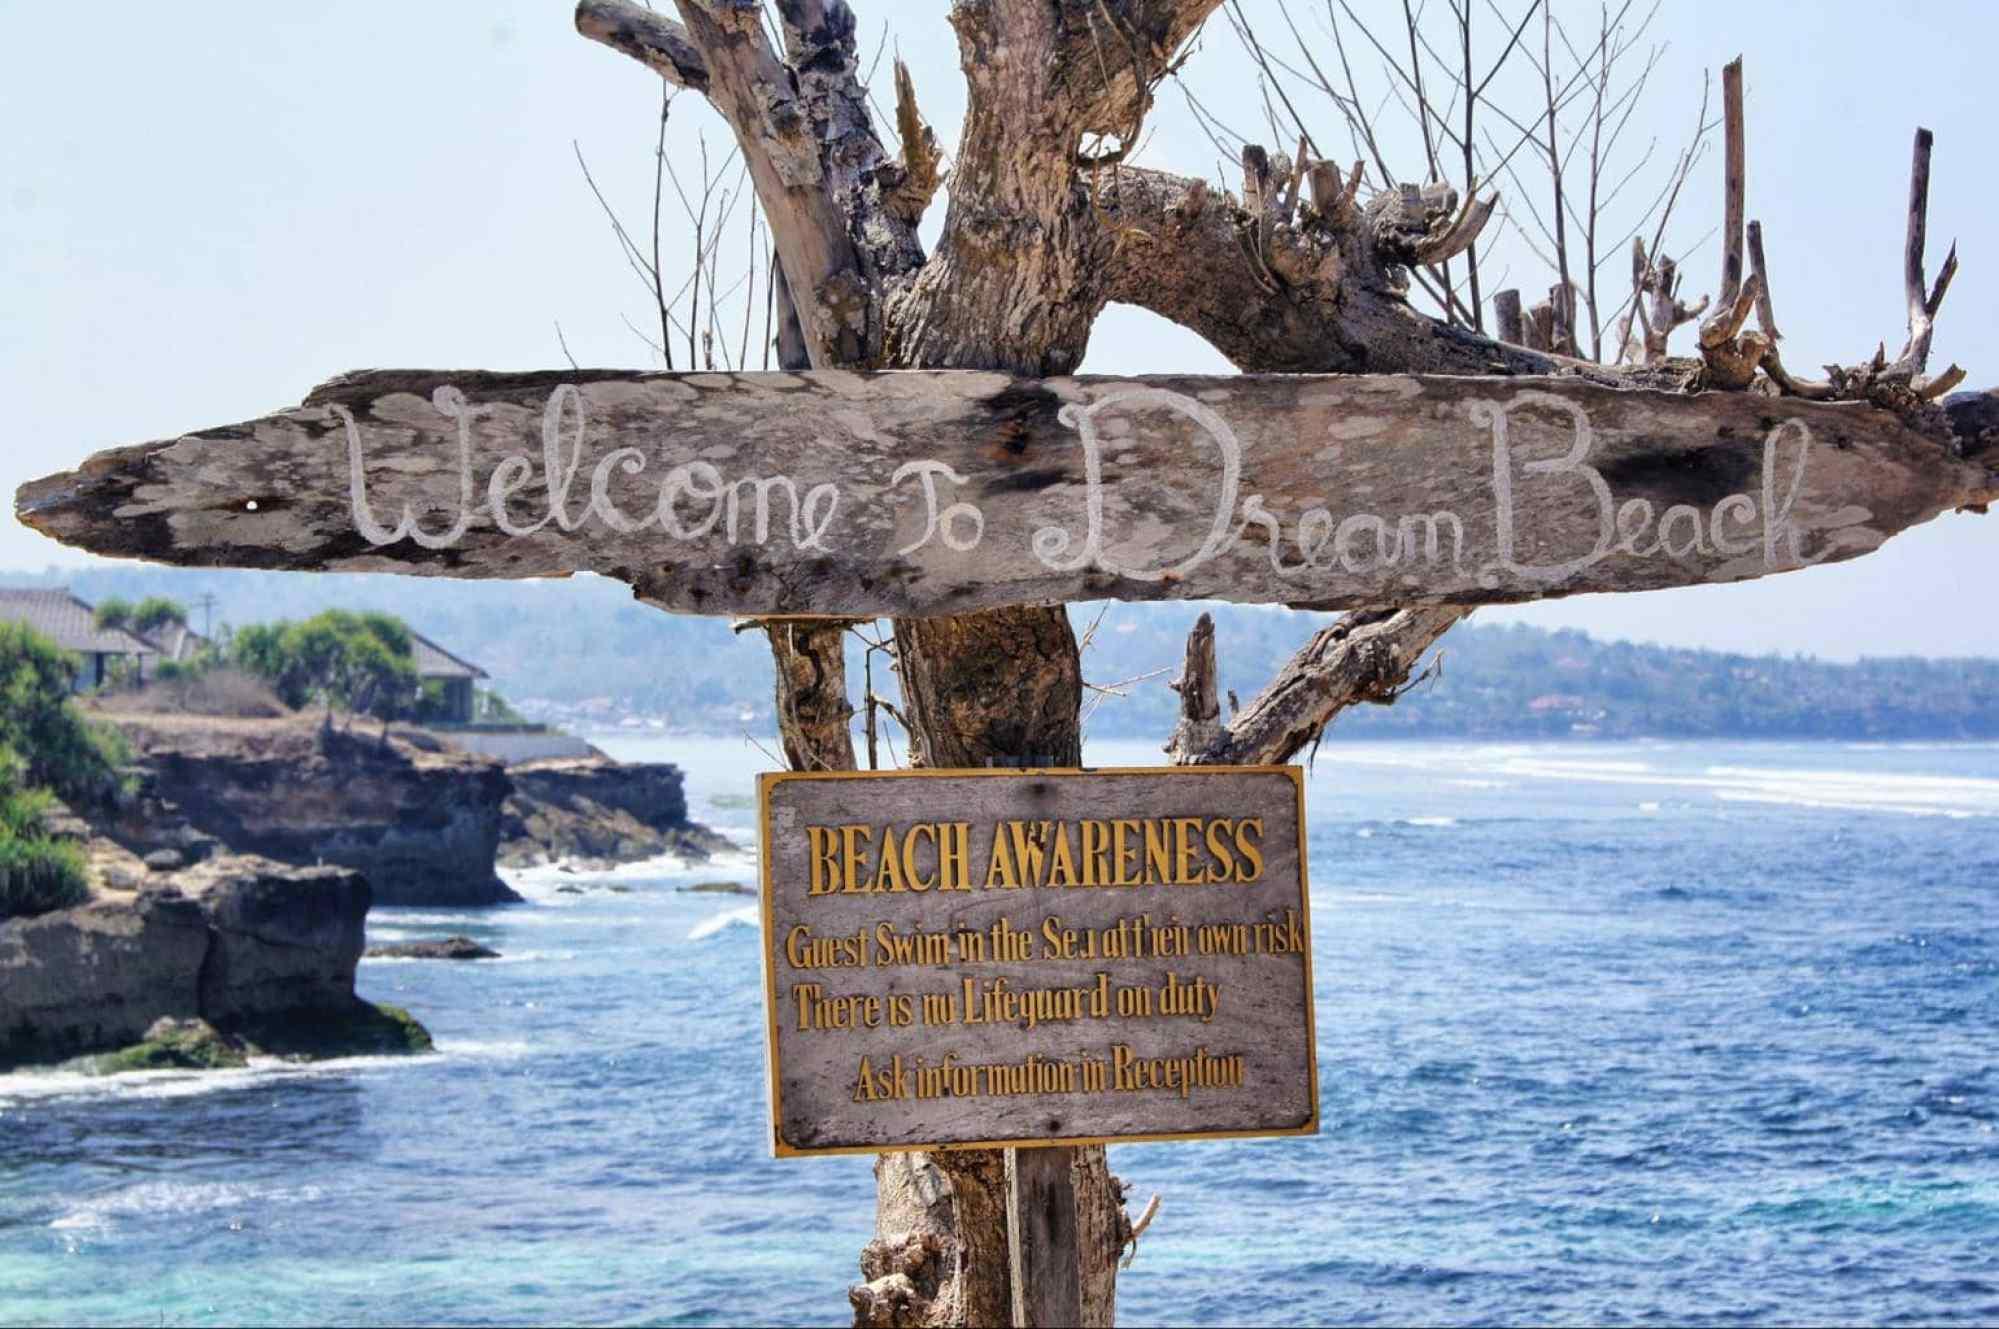 Dream Beach, one of the most famous beaches in Nusa Lembongan, Bali